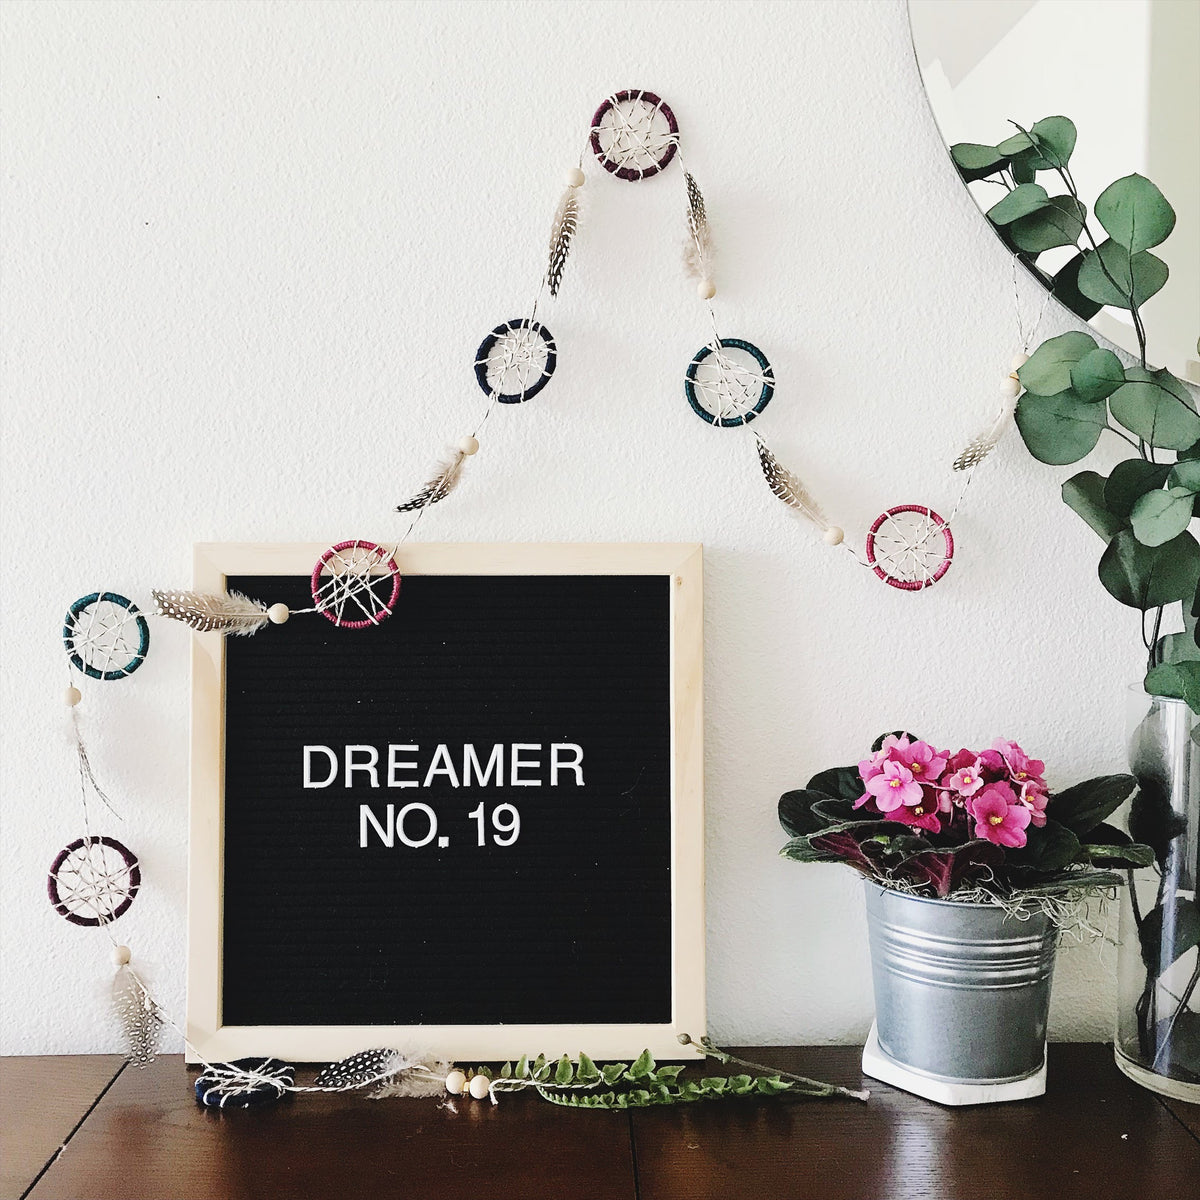 Dreamer No 19 | 100 Days of Dreamers